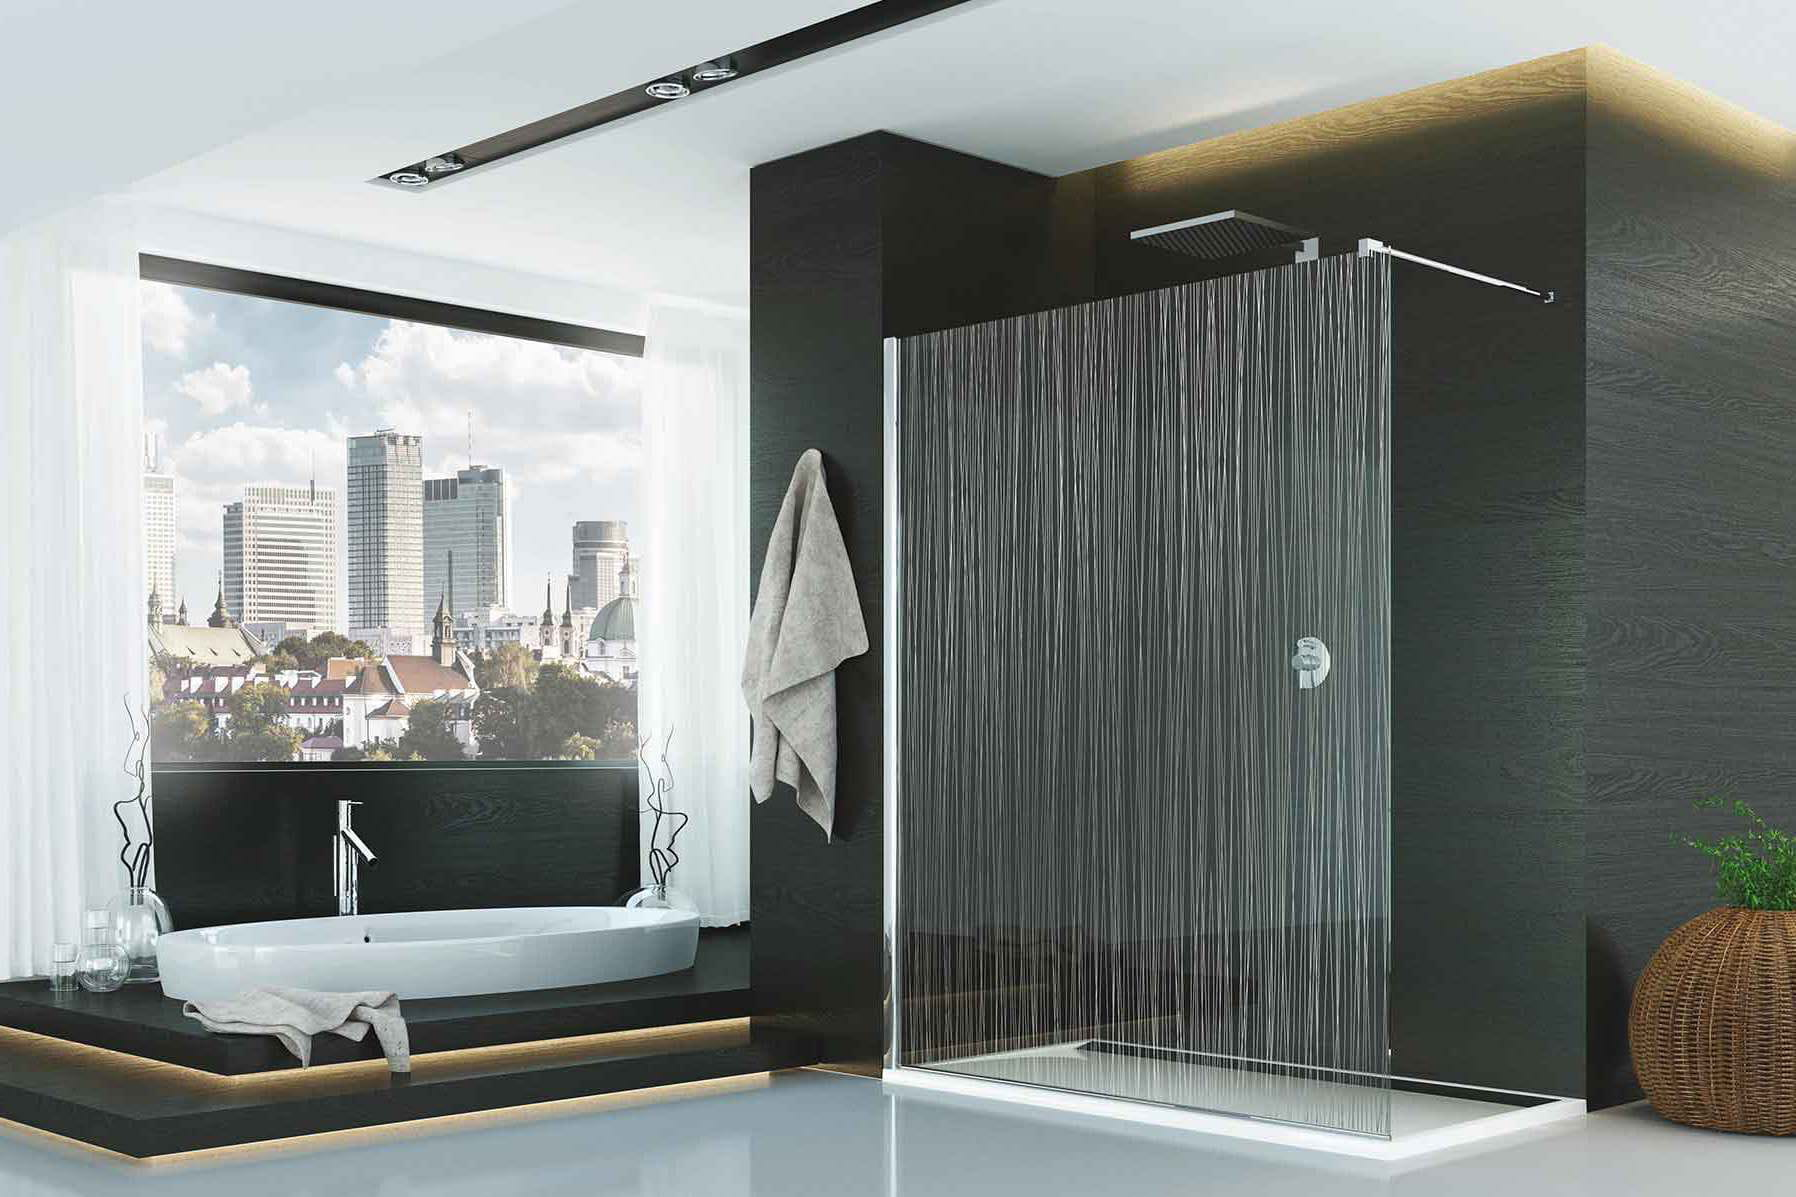 Salle de bain contemporaine douche italienne for Belle douche italienne